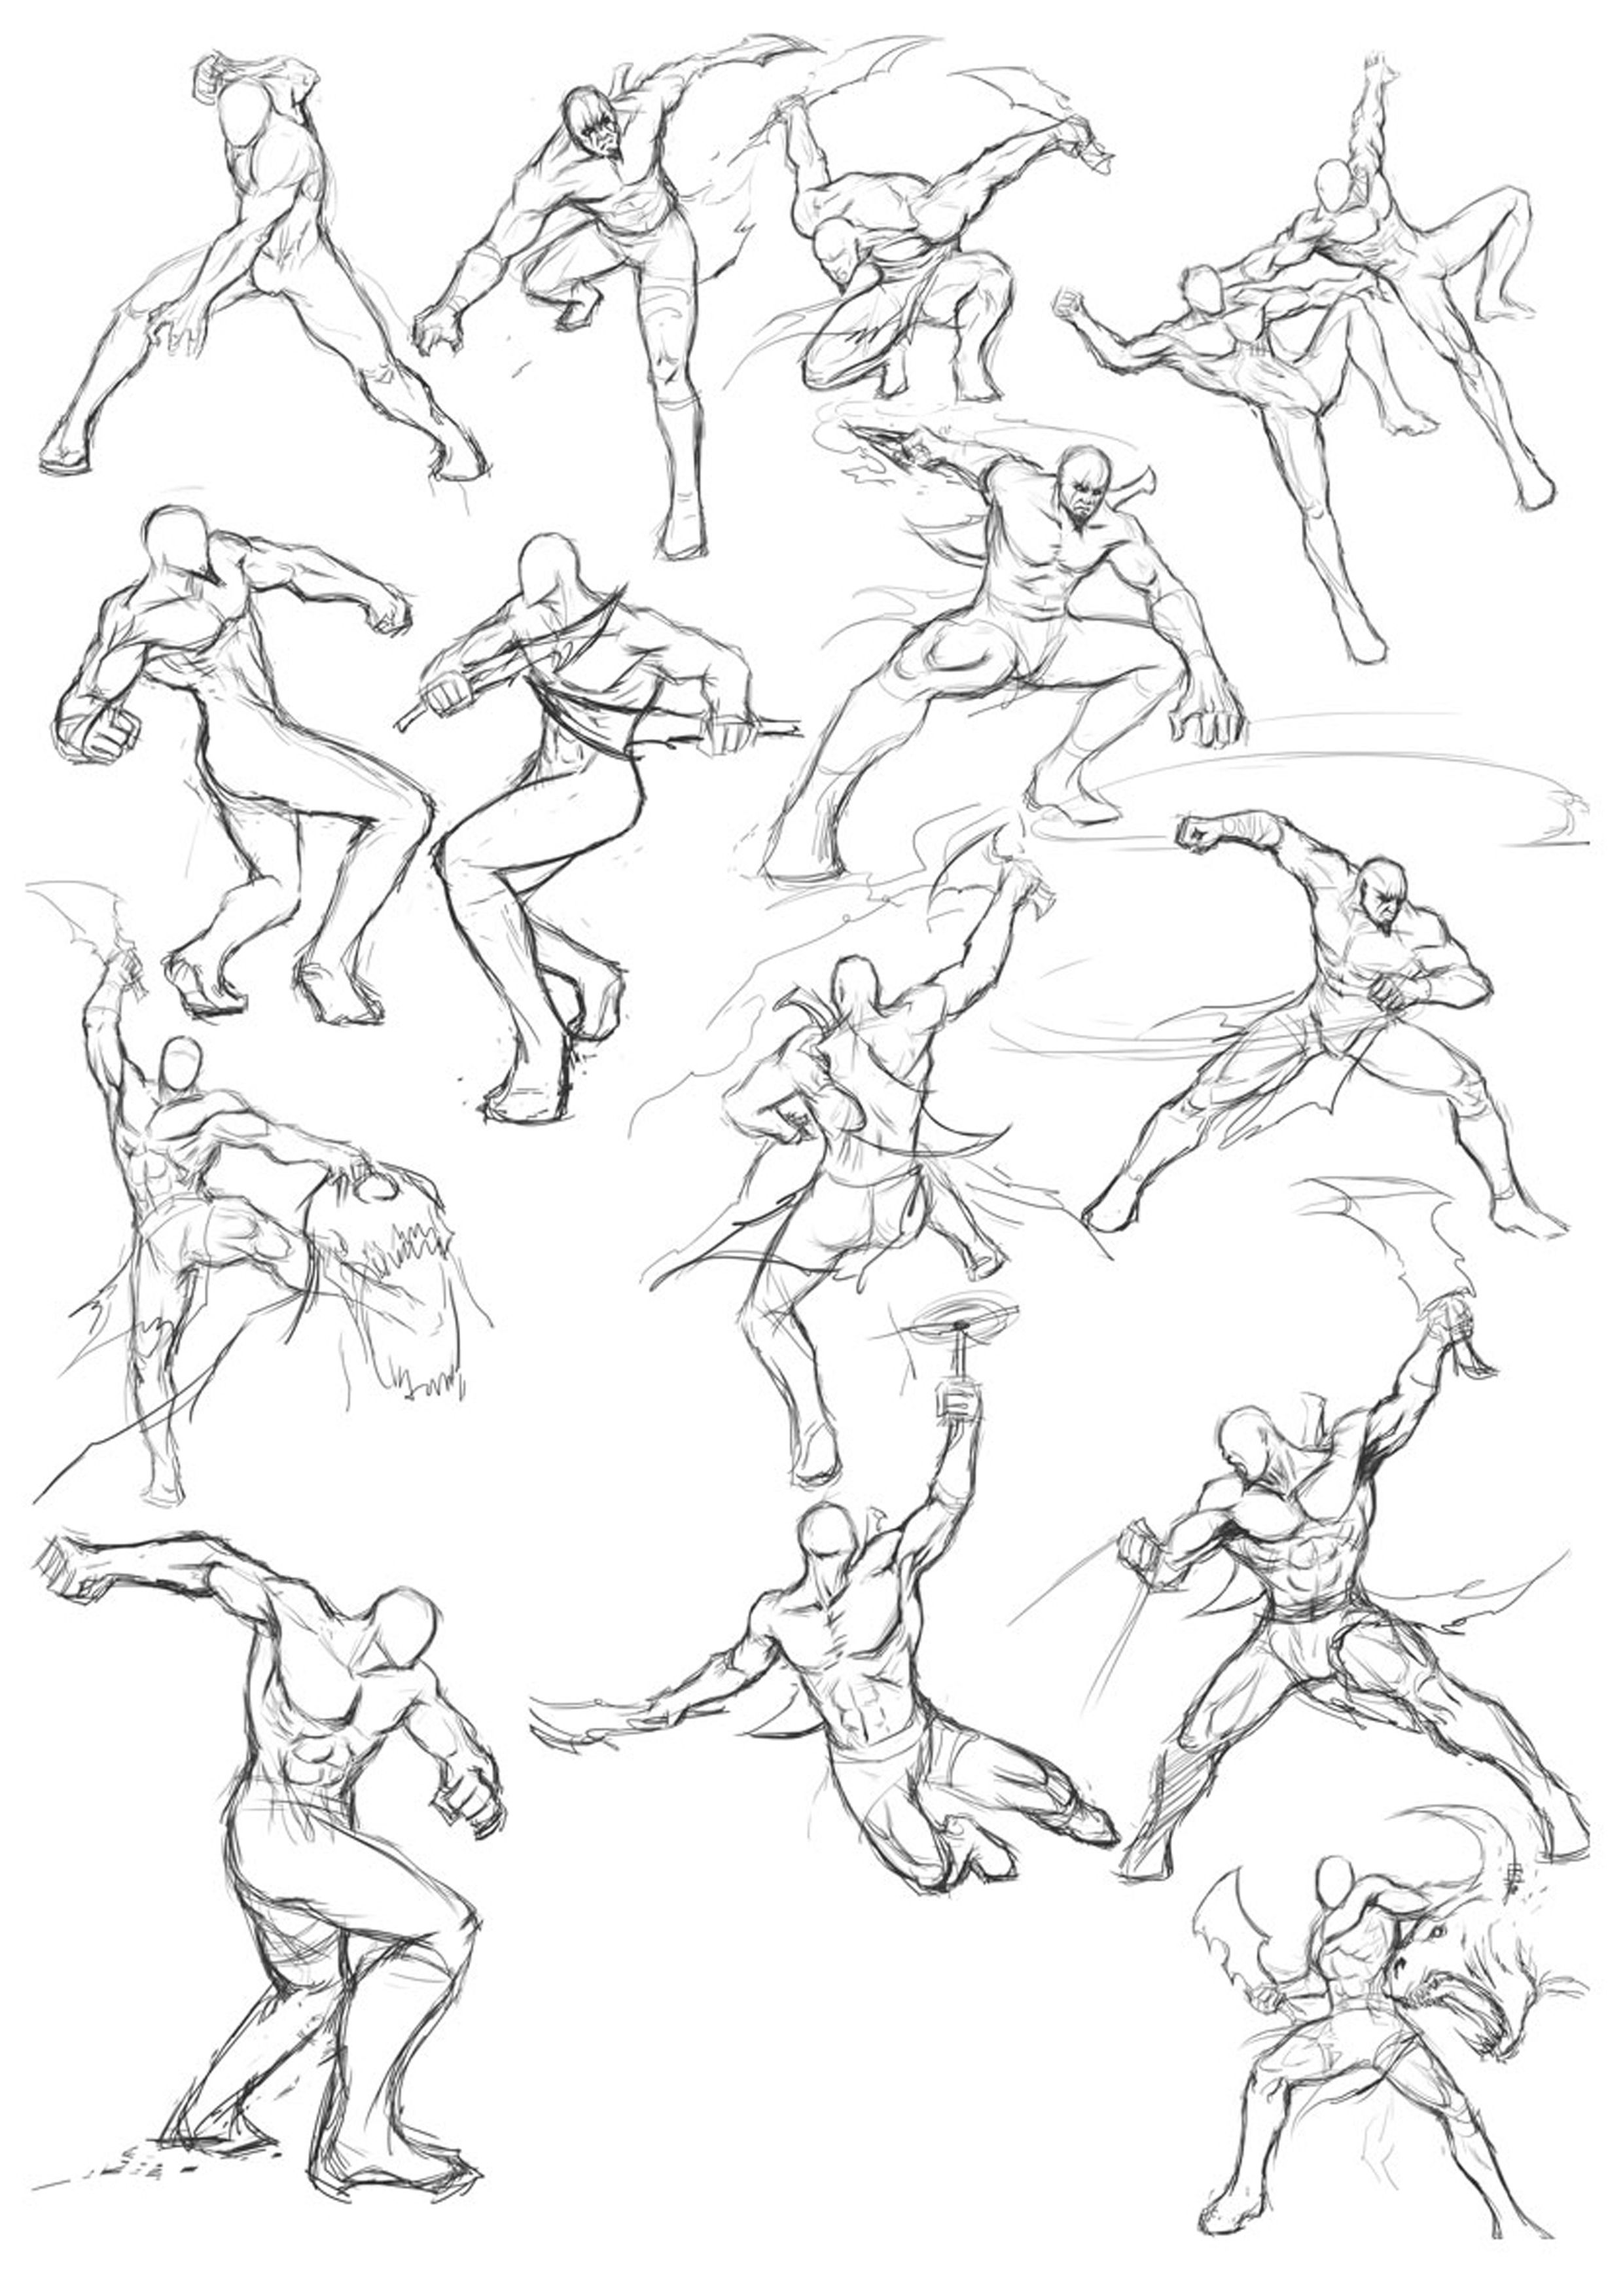 Martial Arts Posture In 2019 Drawing Poses Movement